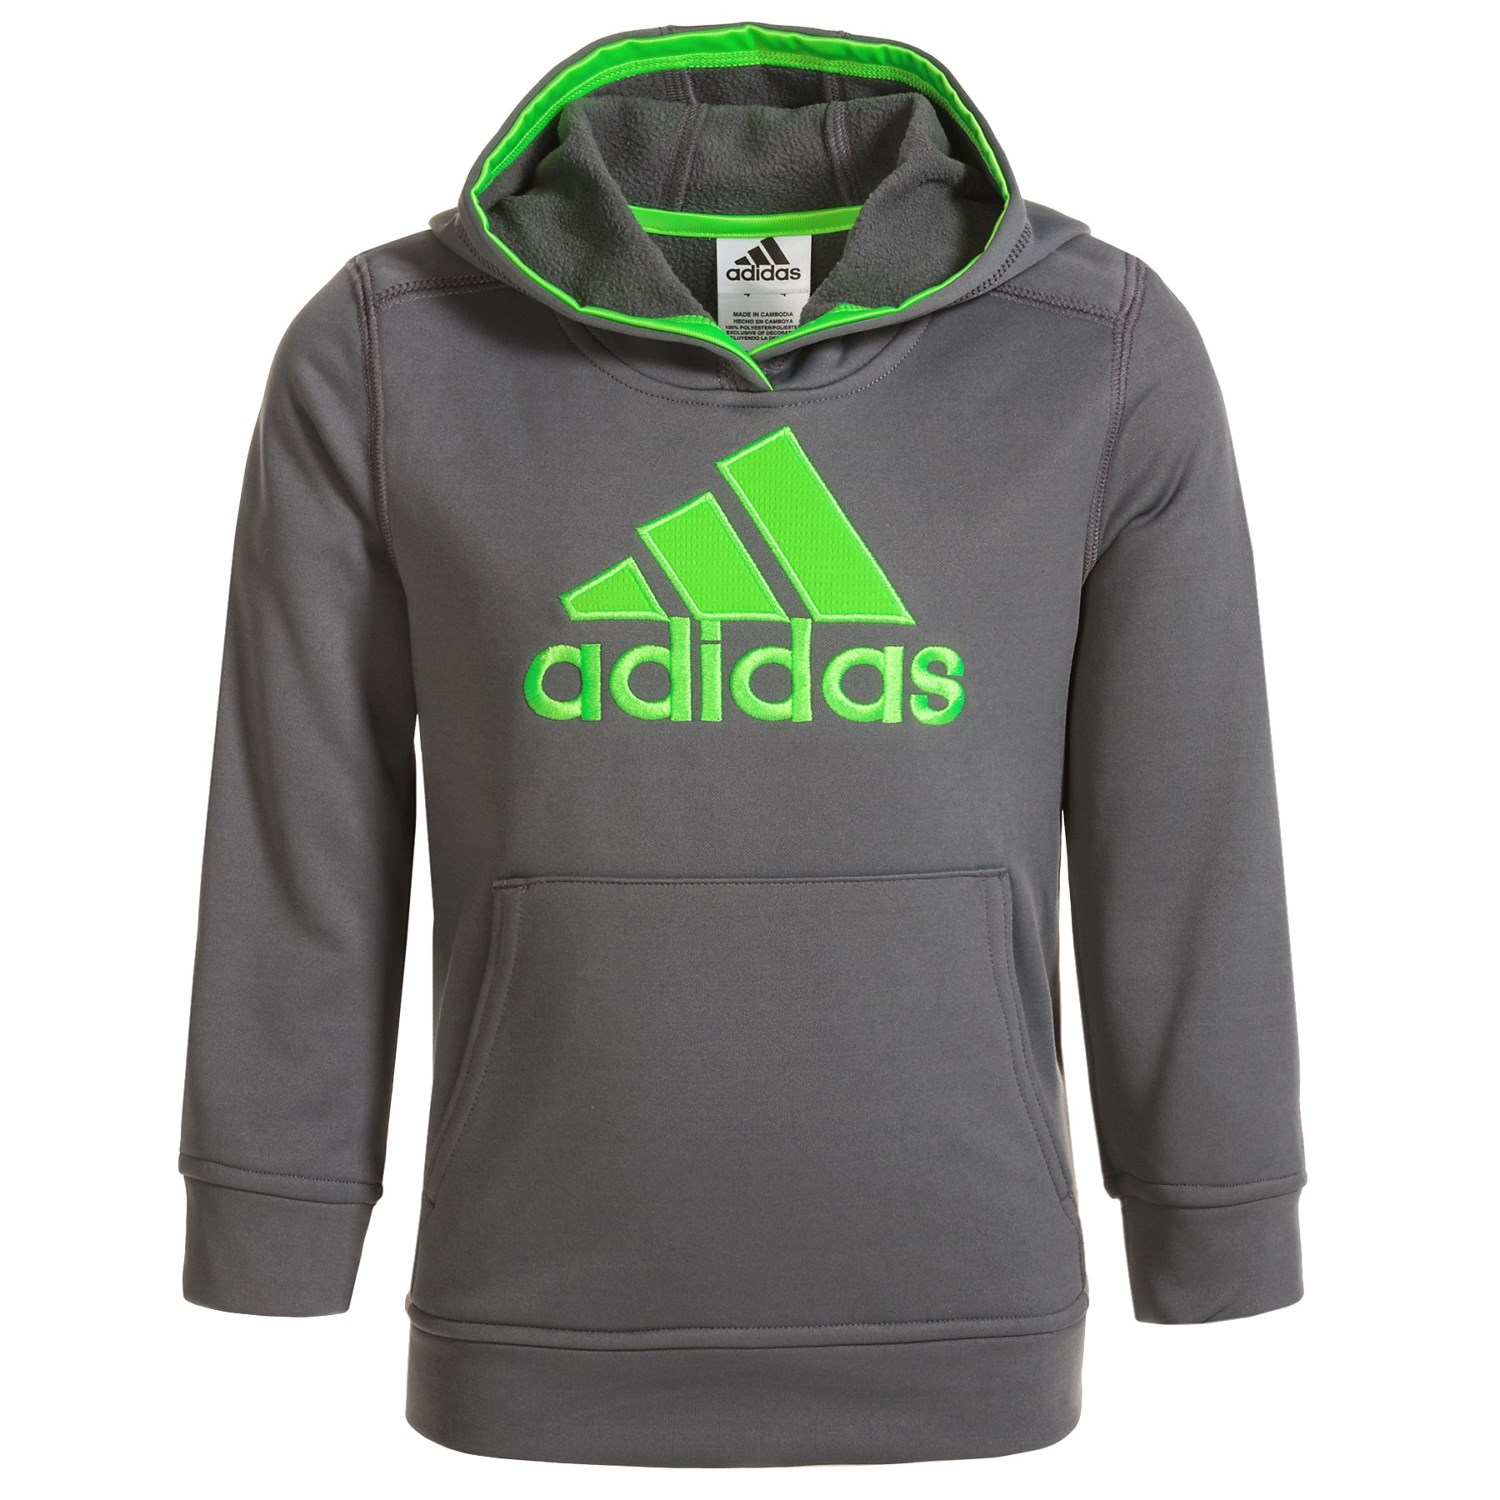 adidas Logo Fleece Hoodie (For Big Boys) - Save 50%